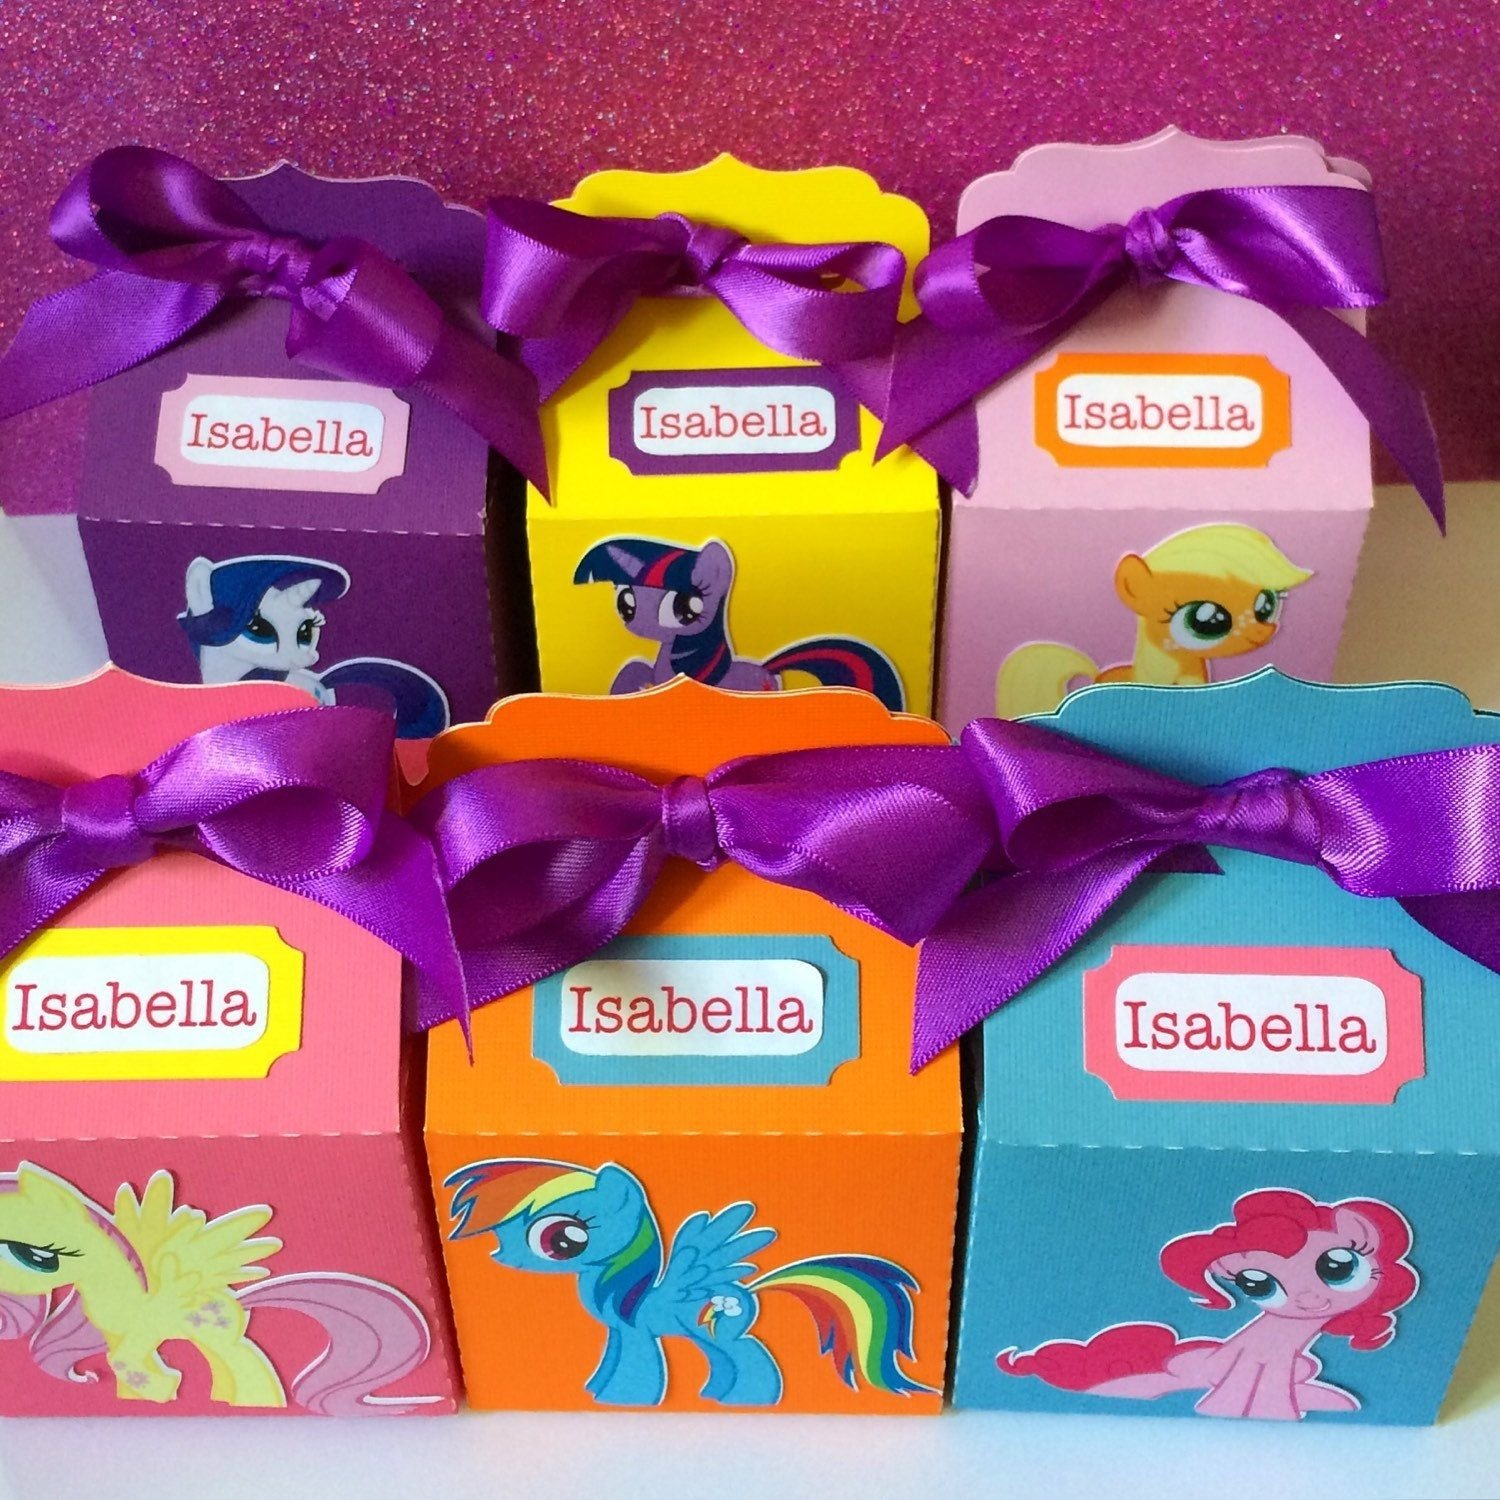 10 Gorgeous My Little Pony Gift Ideas my little pony party personalized favor boxes mymiamicrafts 1